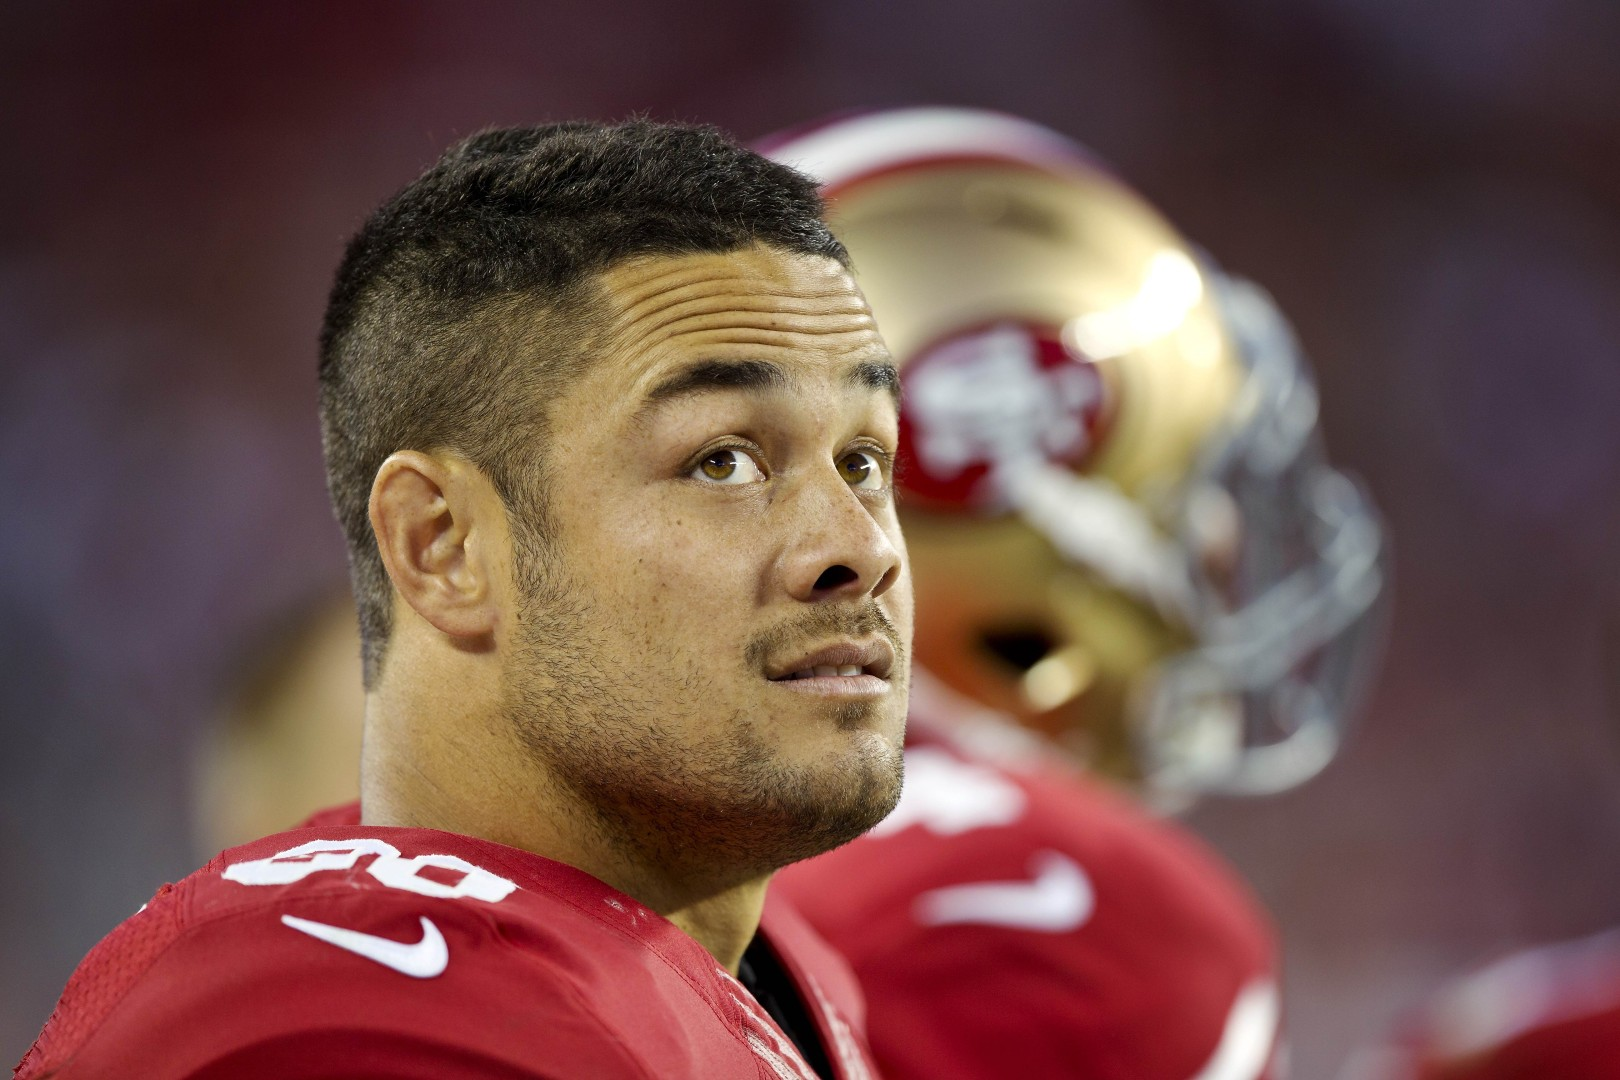 ce4bba3885b Ex-rugby league star Jarryd Hayne continues to impress with NFL's San  Francisco 49ers | South China Morning Post